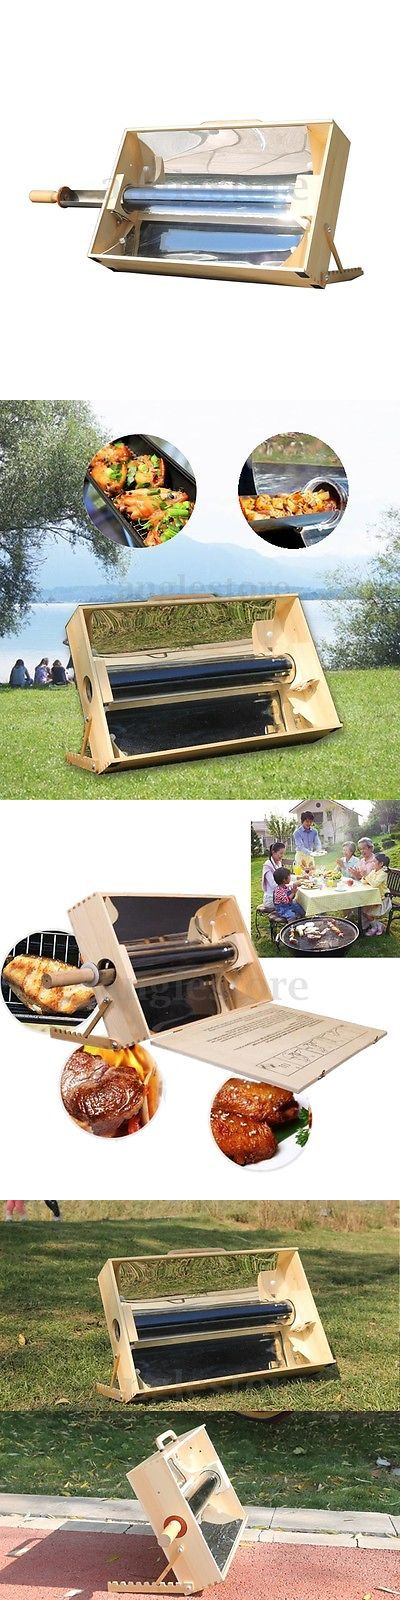 Camping Ovens 181387: Solar Stove Portable Vacuum Glass Tube Oven Outdoor Bbq Grill Camping Sun Cooker -> BUY IT NOW ONLY: $169.59 on eBay!